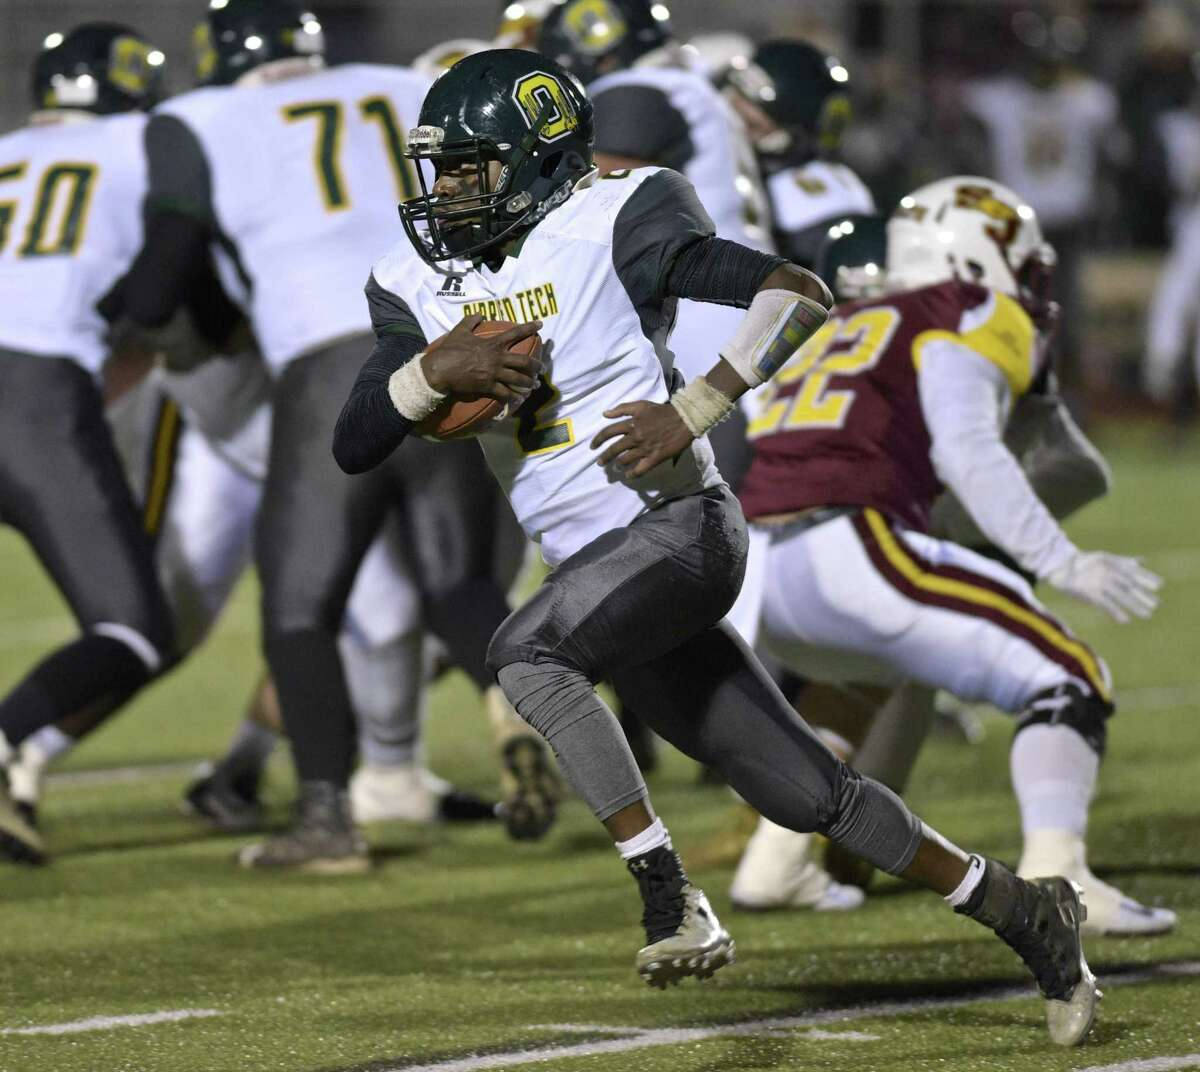 Tech's Jommar Roc (2) goes around the outside in the Class S football playoff game between O'Brien Tech and St.Joseph high schools on Tuesday night, November 28, 2017, at Trumbull High School, in Trumbull, Conn.